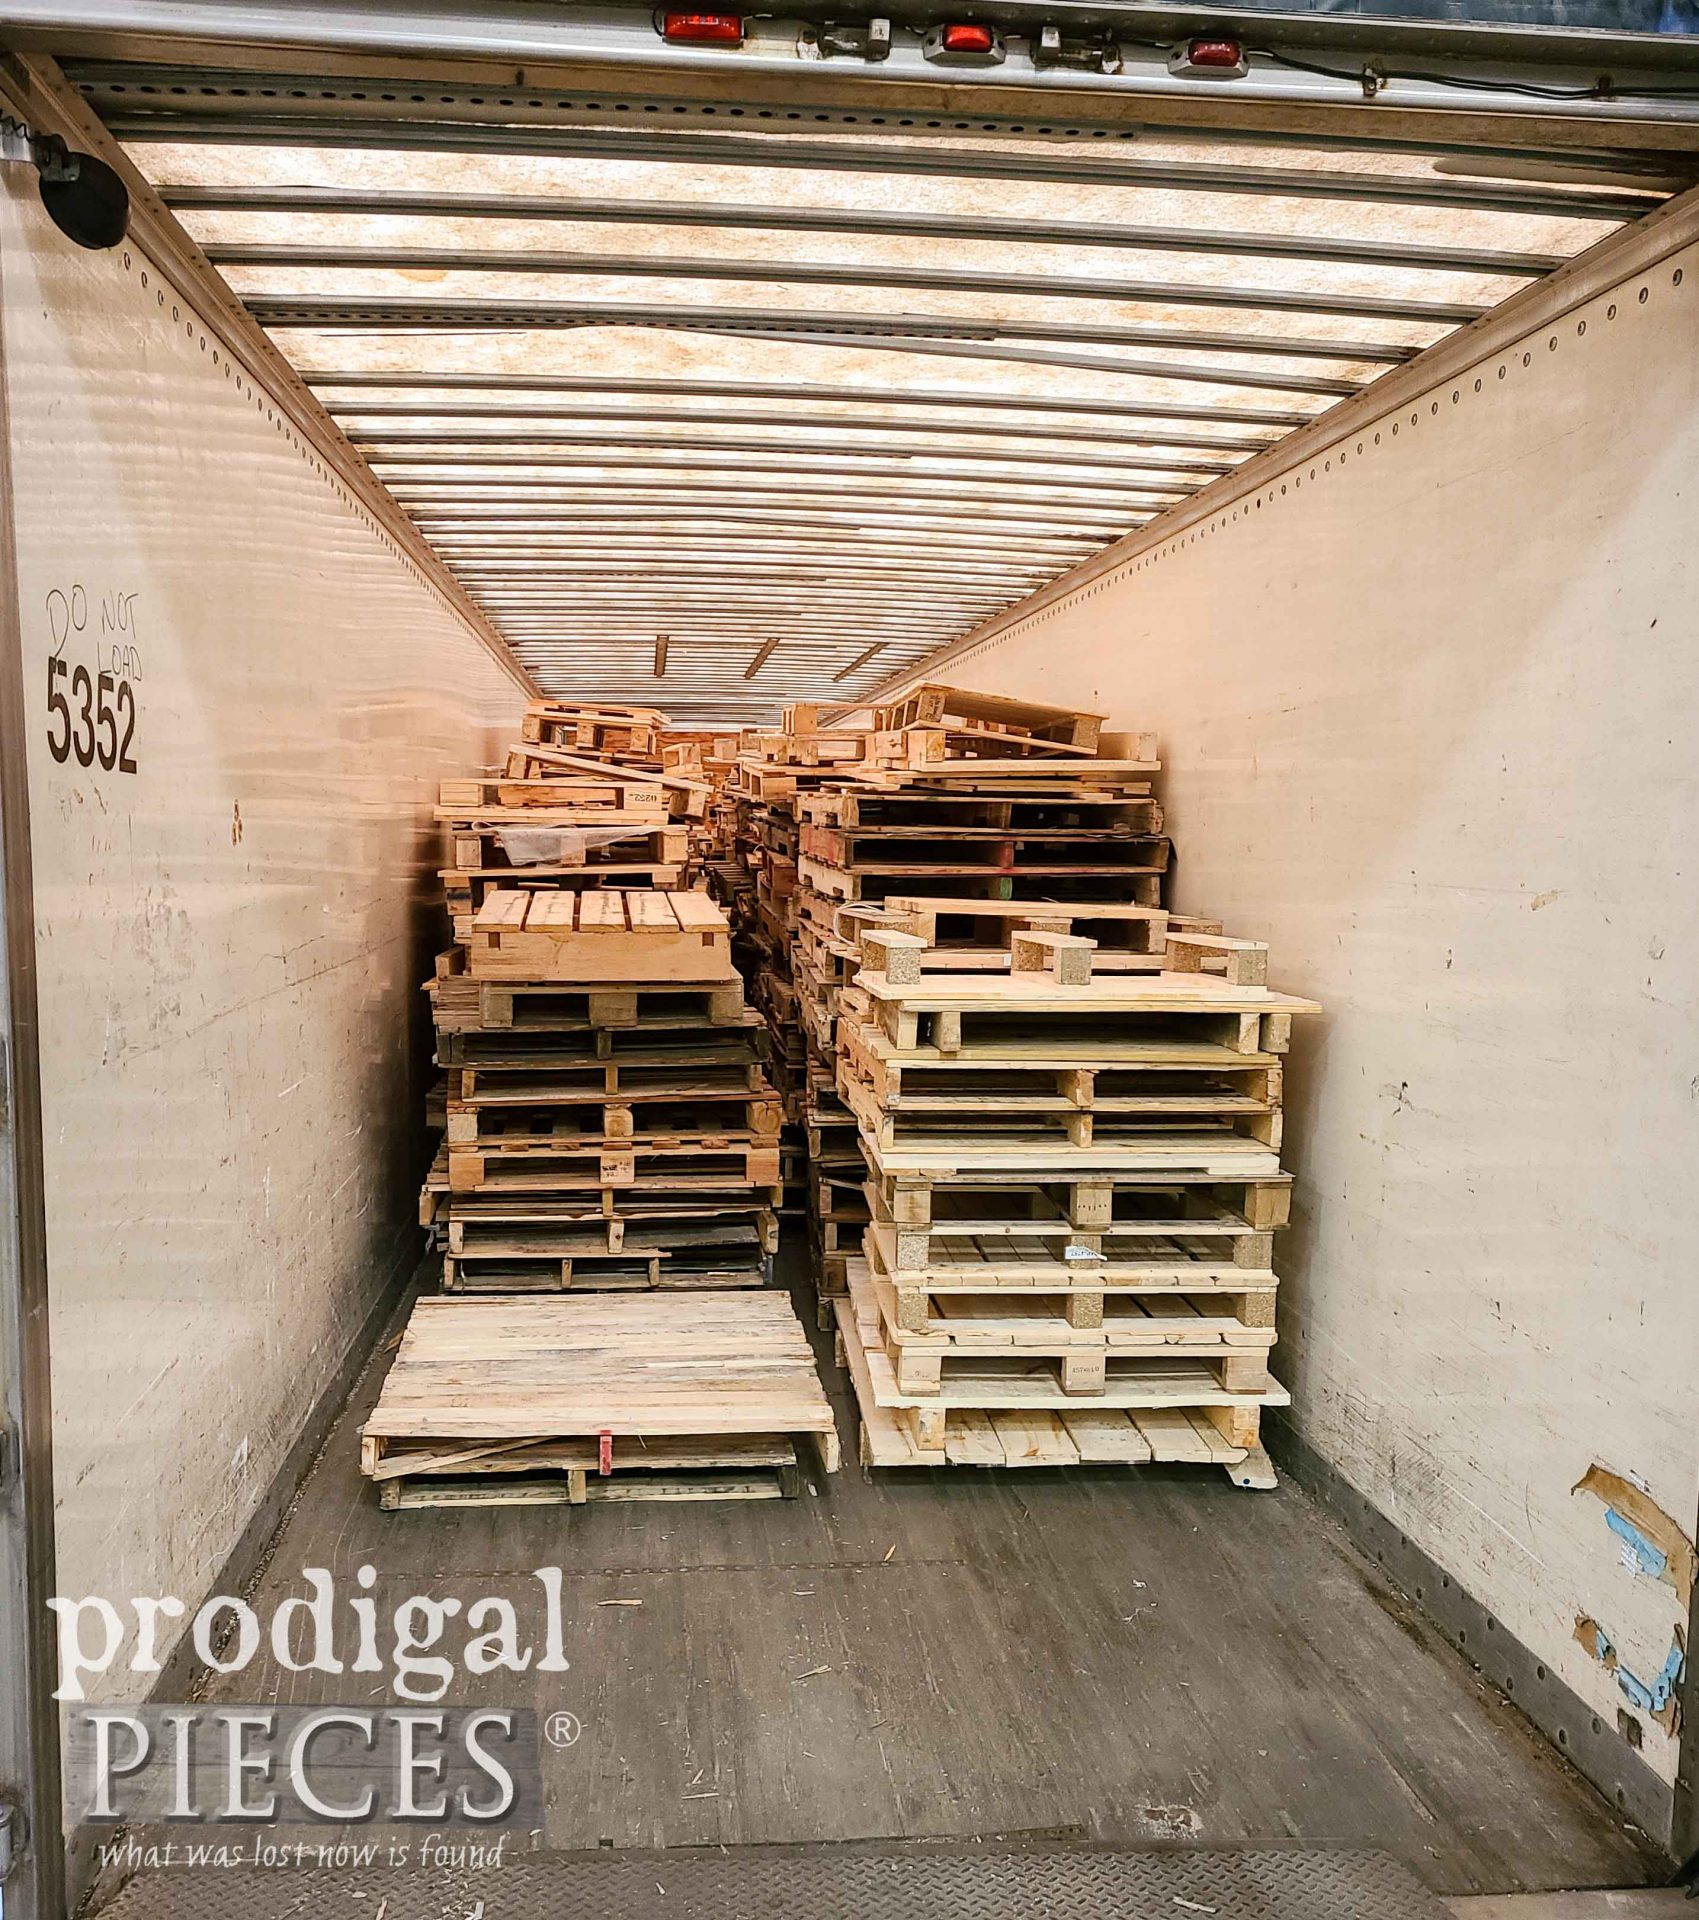 Tractor Trailer Full of Pallets | prodigalpieces.com #prodigalpieces